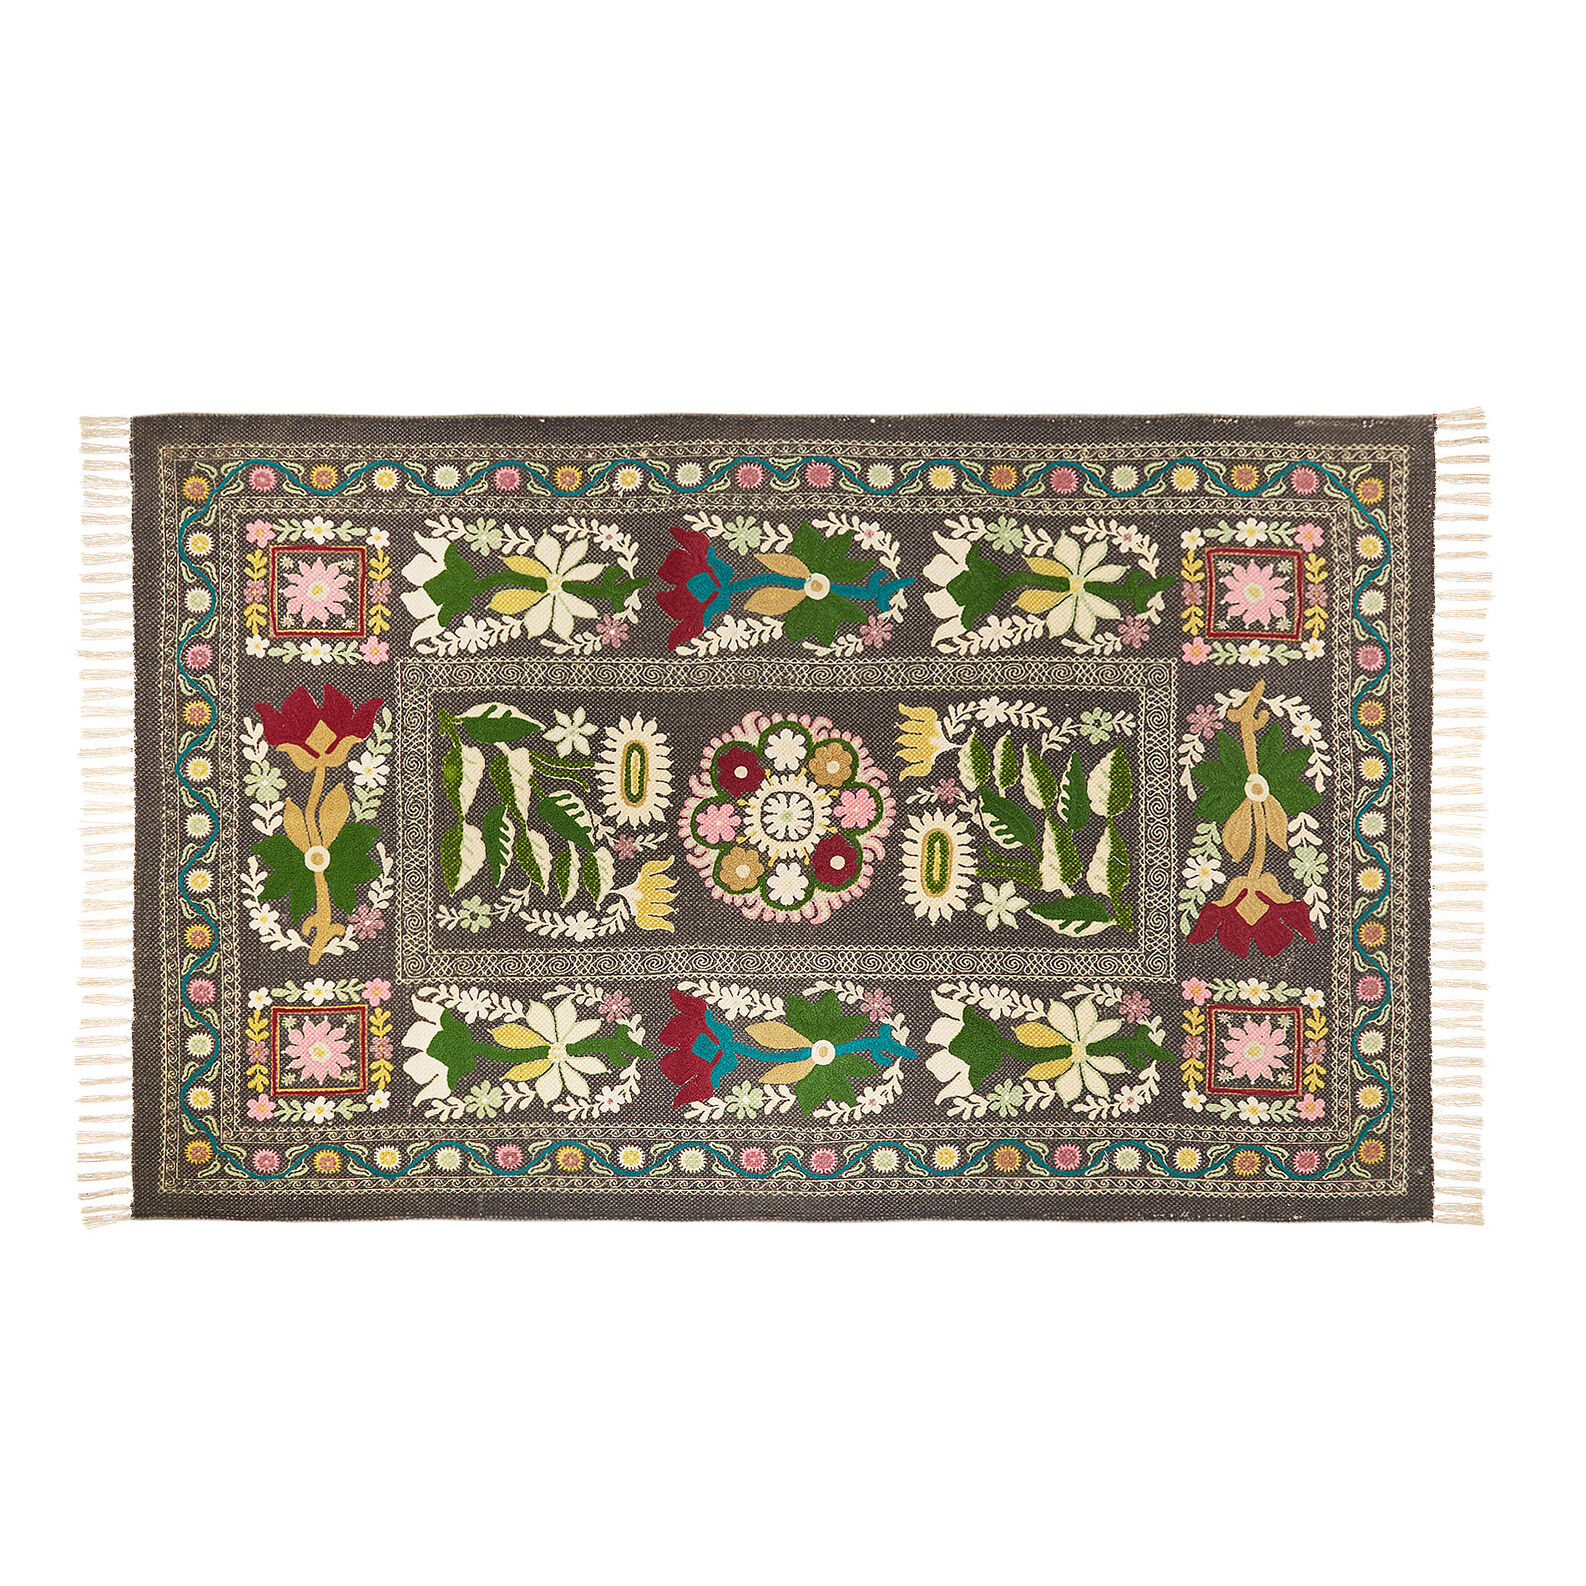 Hand-woven cotton rug embroidered in wool